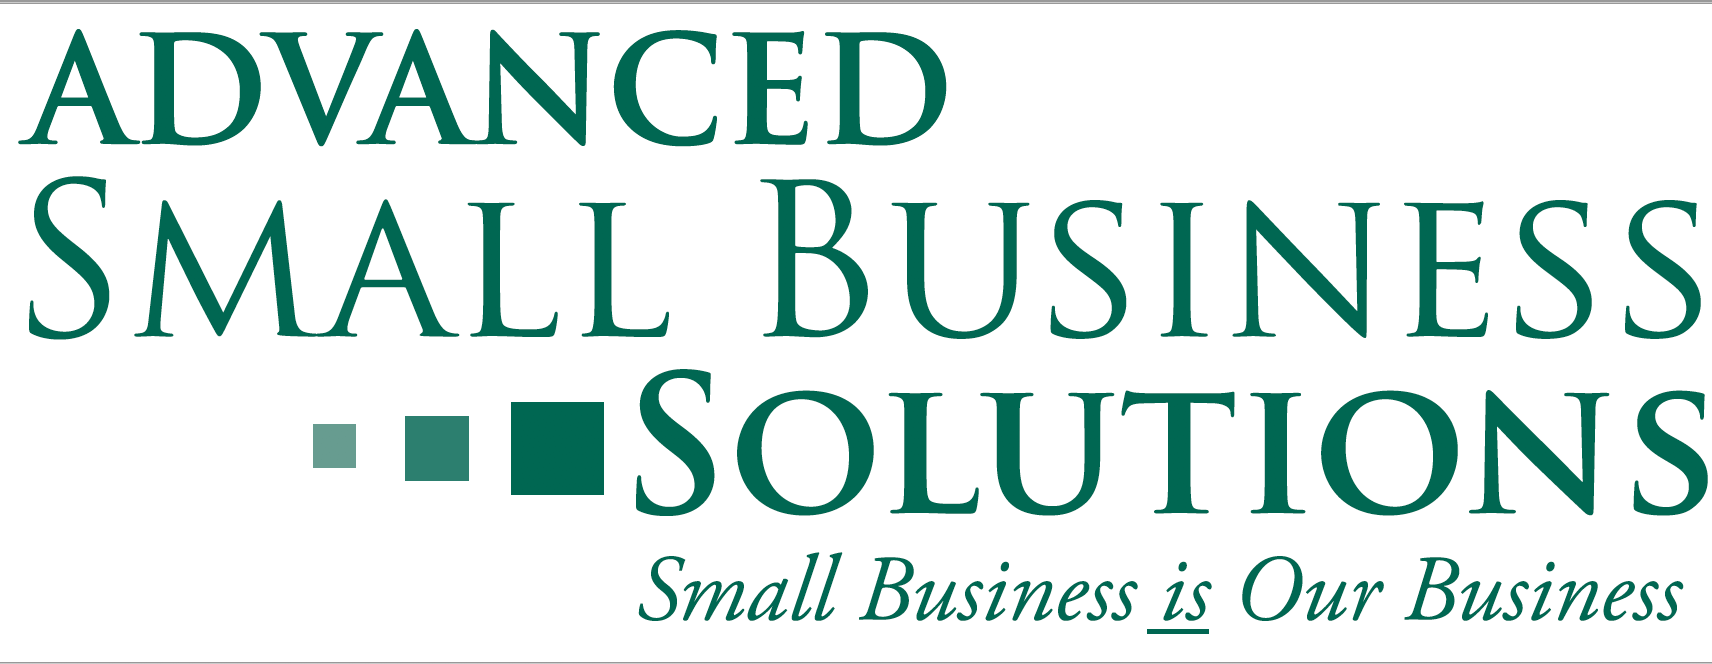 Advanced Small Business Solutions